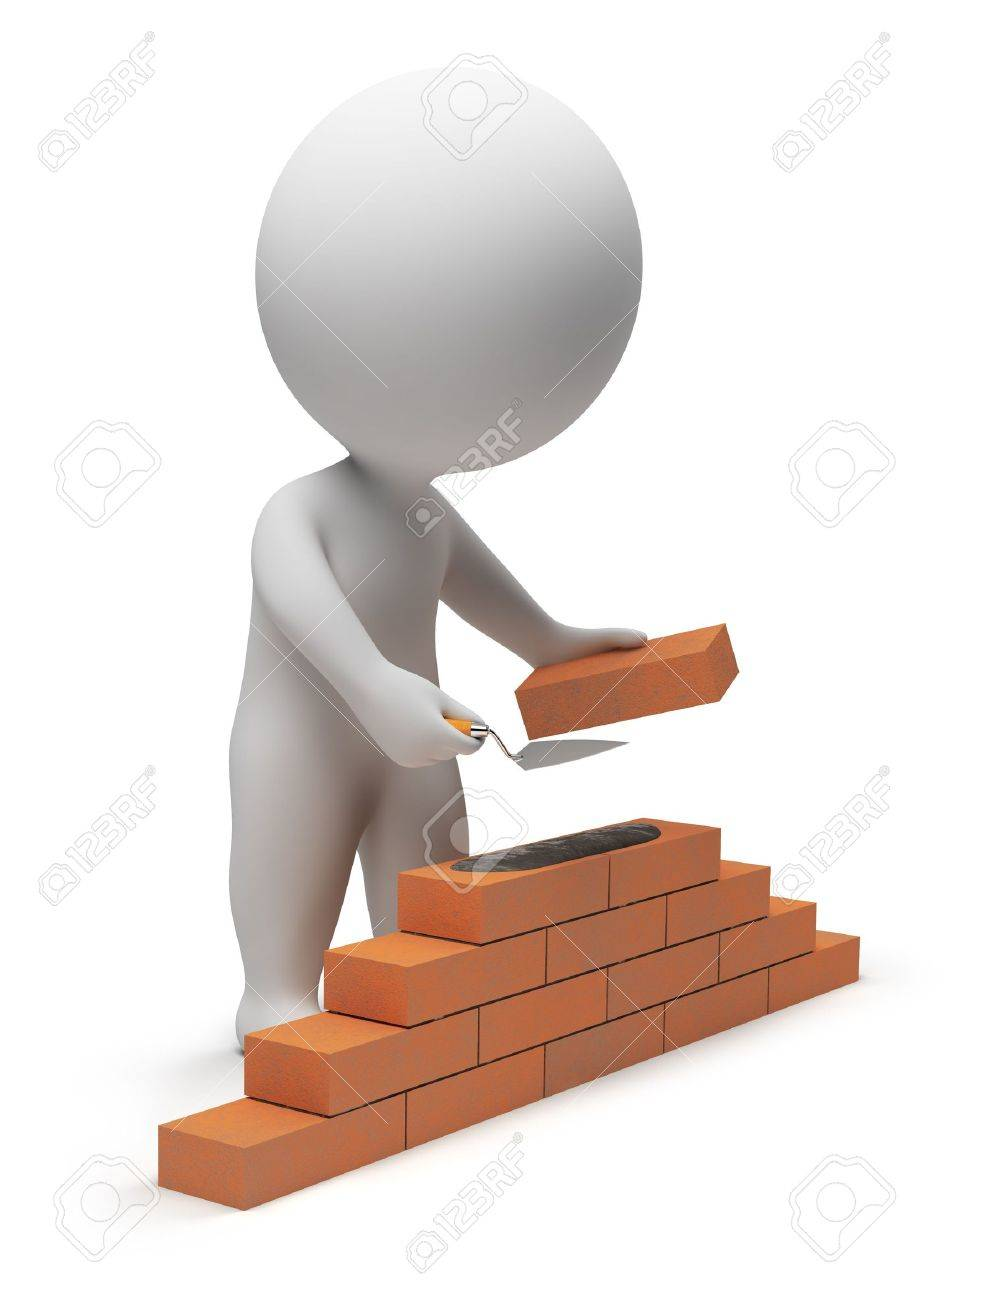 3d small people - builder laying down bricks. 3d image. Isolated white background. Stock Photo - 6582786